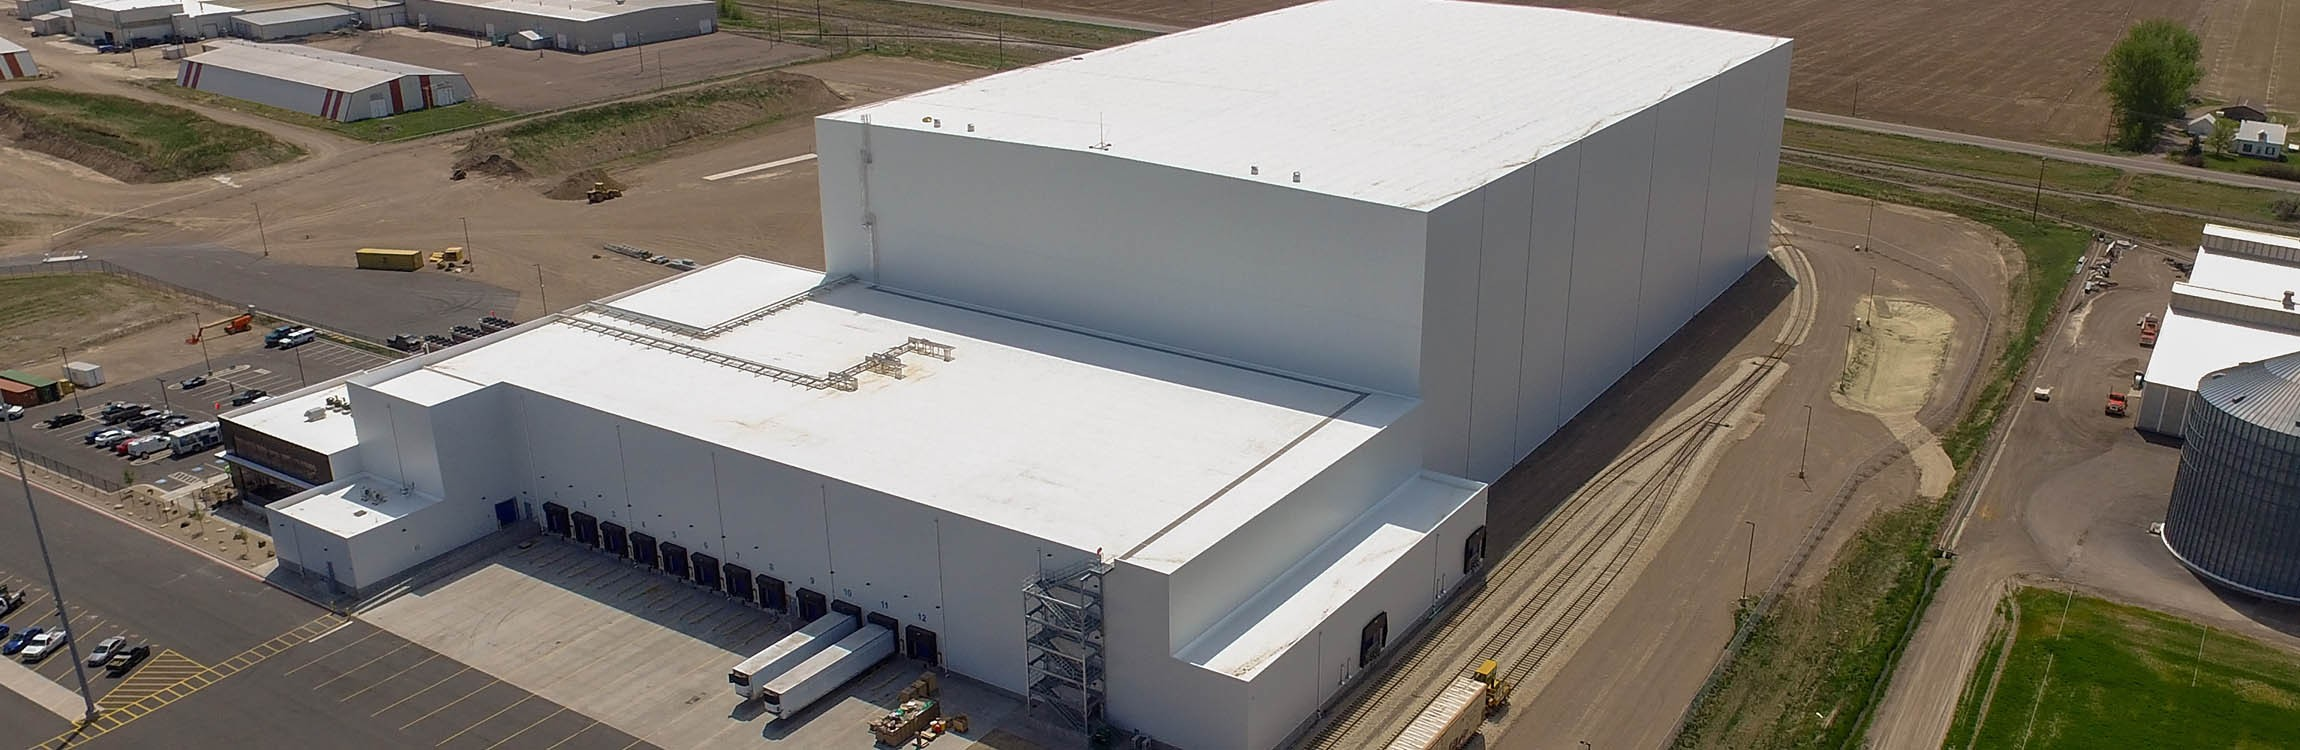 NewCold warehouse for deep-freeze intralogistics.